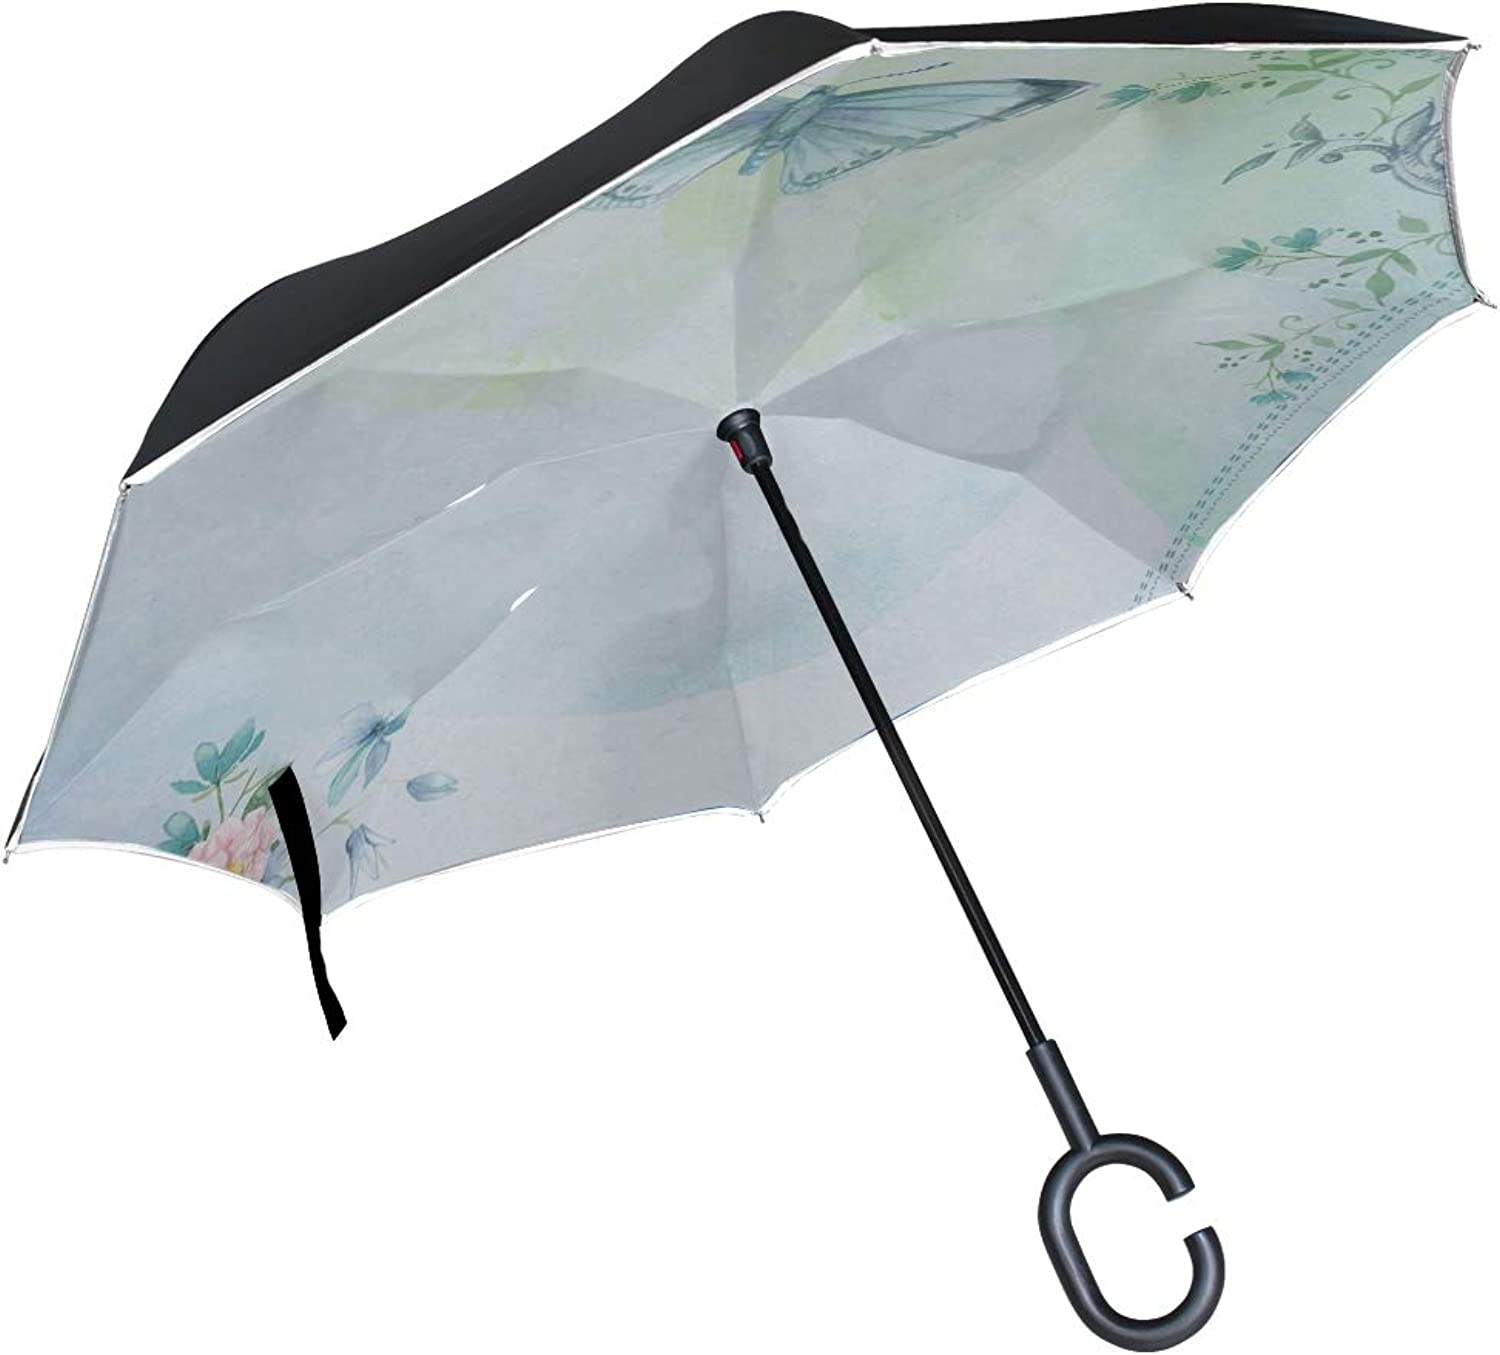 Double Layer Ingreened Butterfly Vintage Collage Sky Modern Butterflies 1064162 Umbrellas Reverse Folding Umbrella Windproof Uv Predection Big Straight Umbrella For Car Rain Outdoor With Cshaped Handle